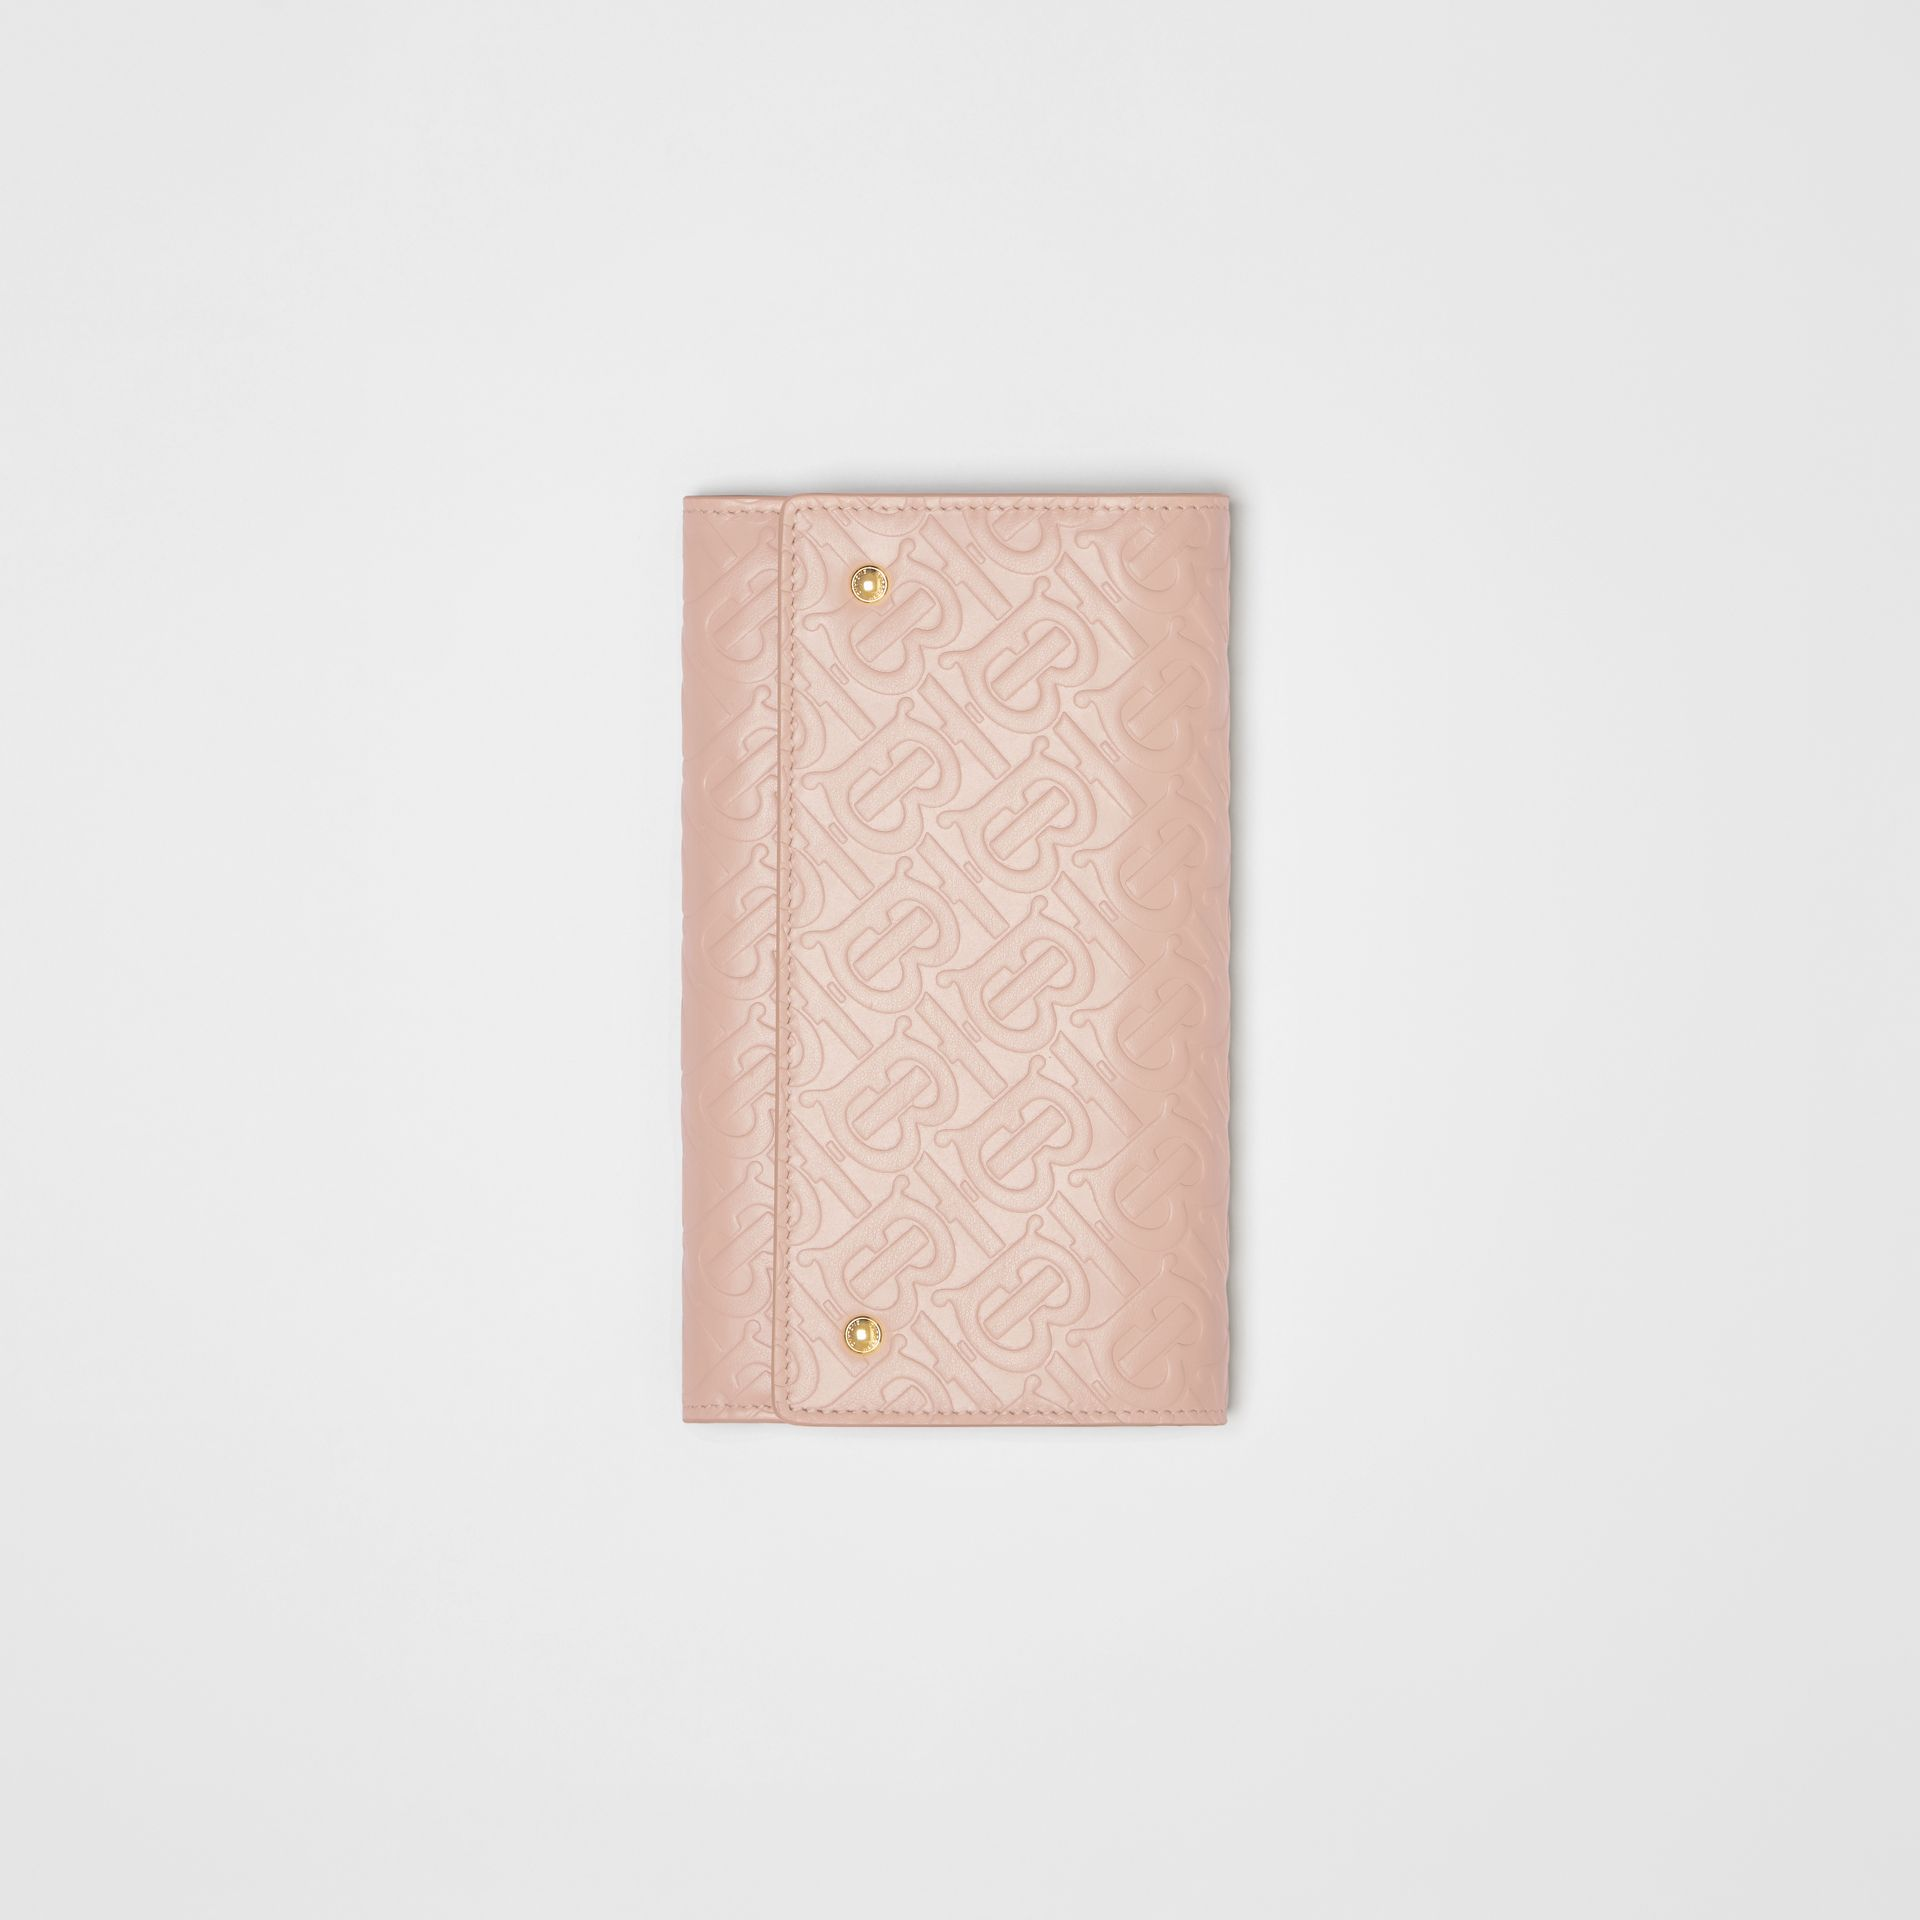 Monogram Leather Wallet with Detachable Strap in Rose Beige - Women | Burberry - gallery image 6